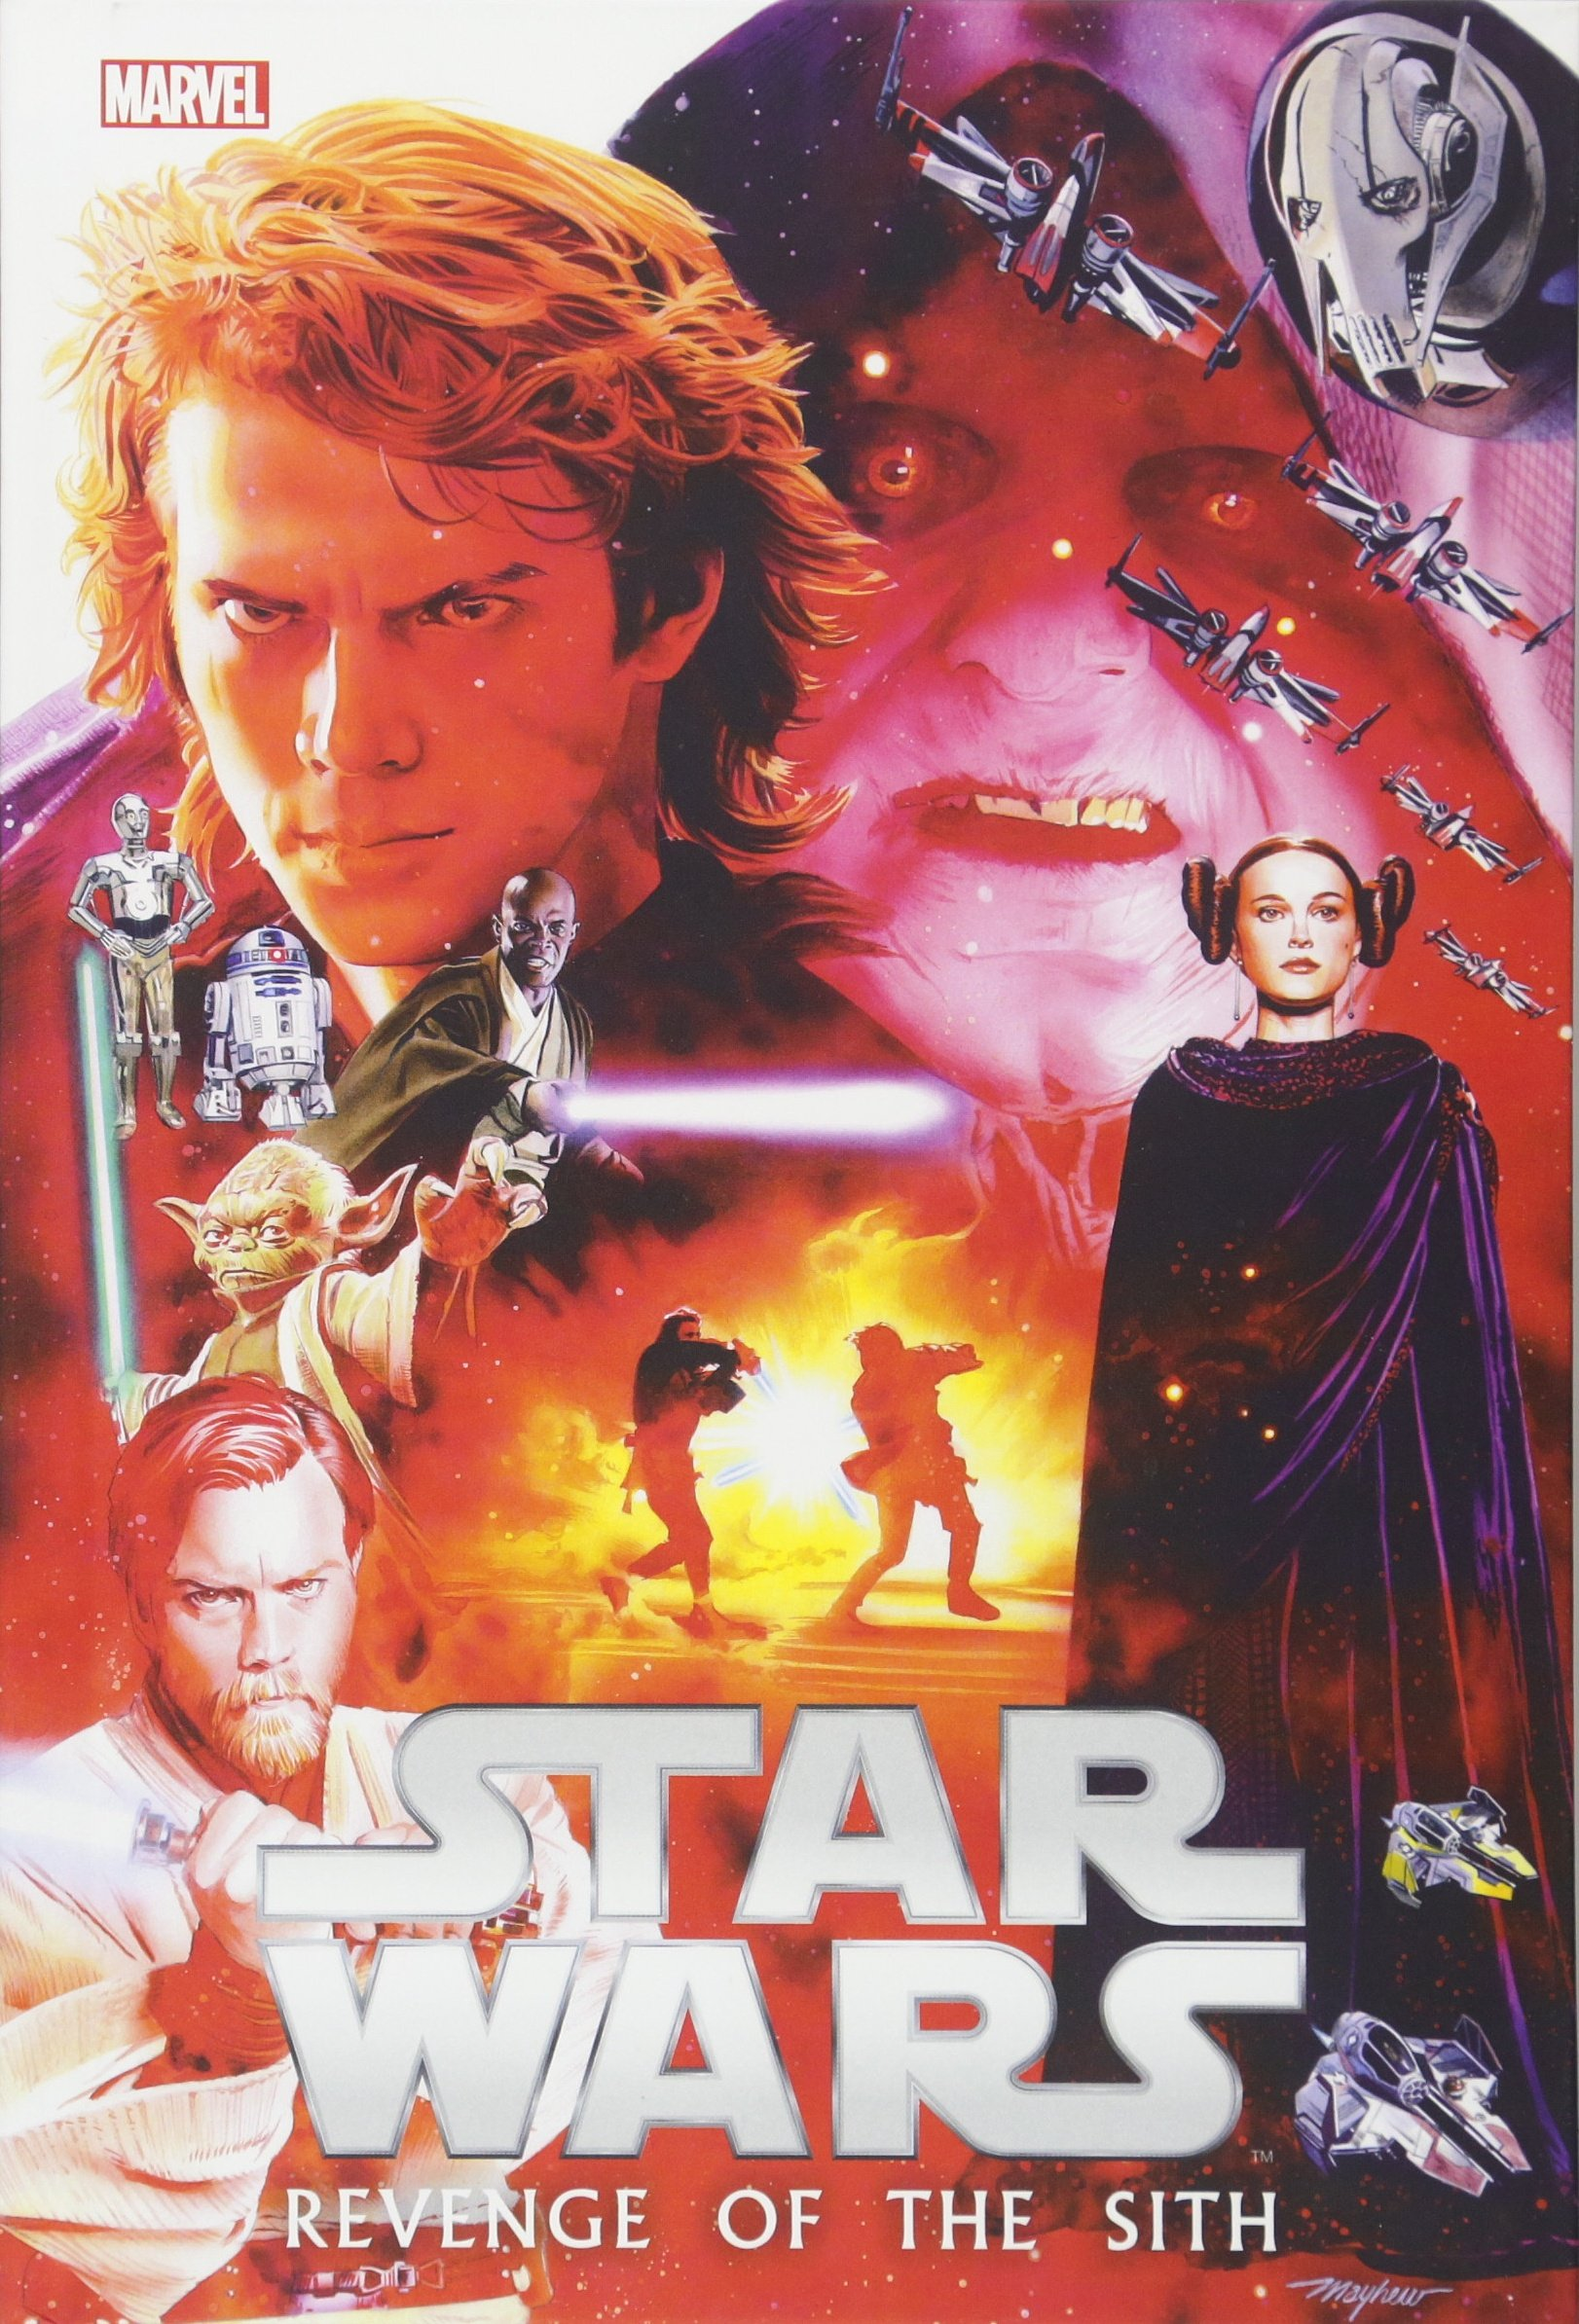 Star Wars Episode Iii Revenge Of The Sith Buy Online In Bahrain Marvel Entertainment Products In Bahrain See Prices Reviews And Free Delivery Over Bd 25 000 Desertcart